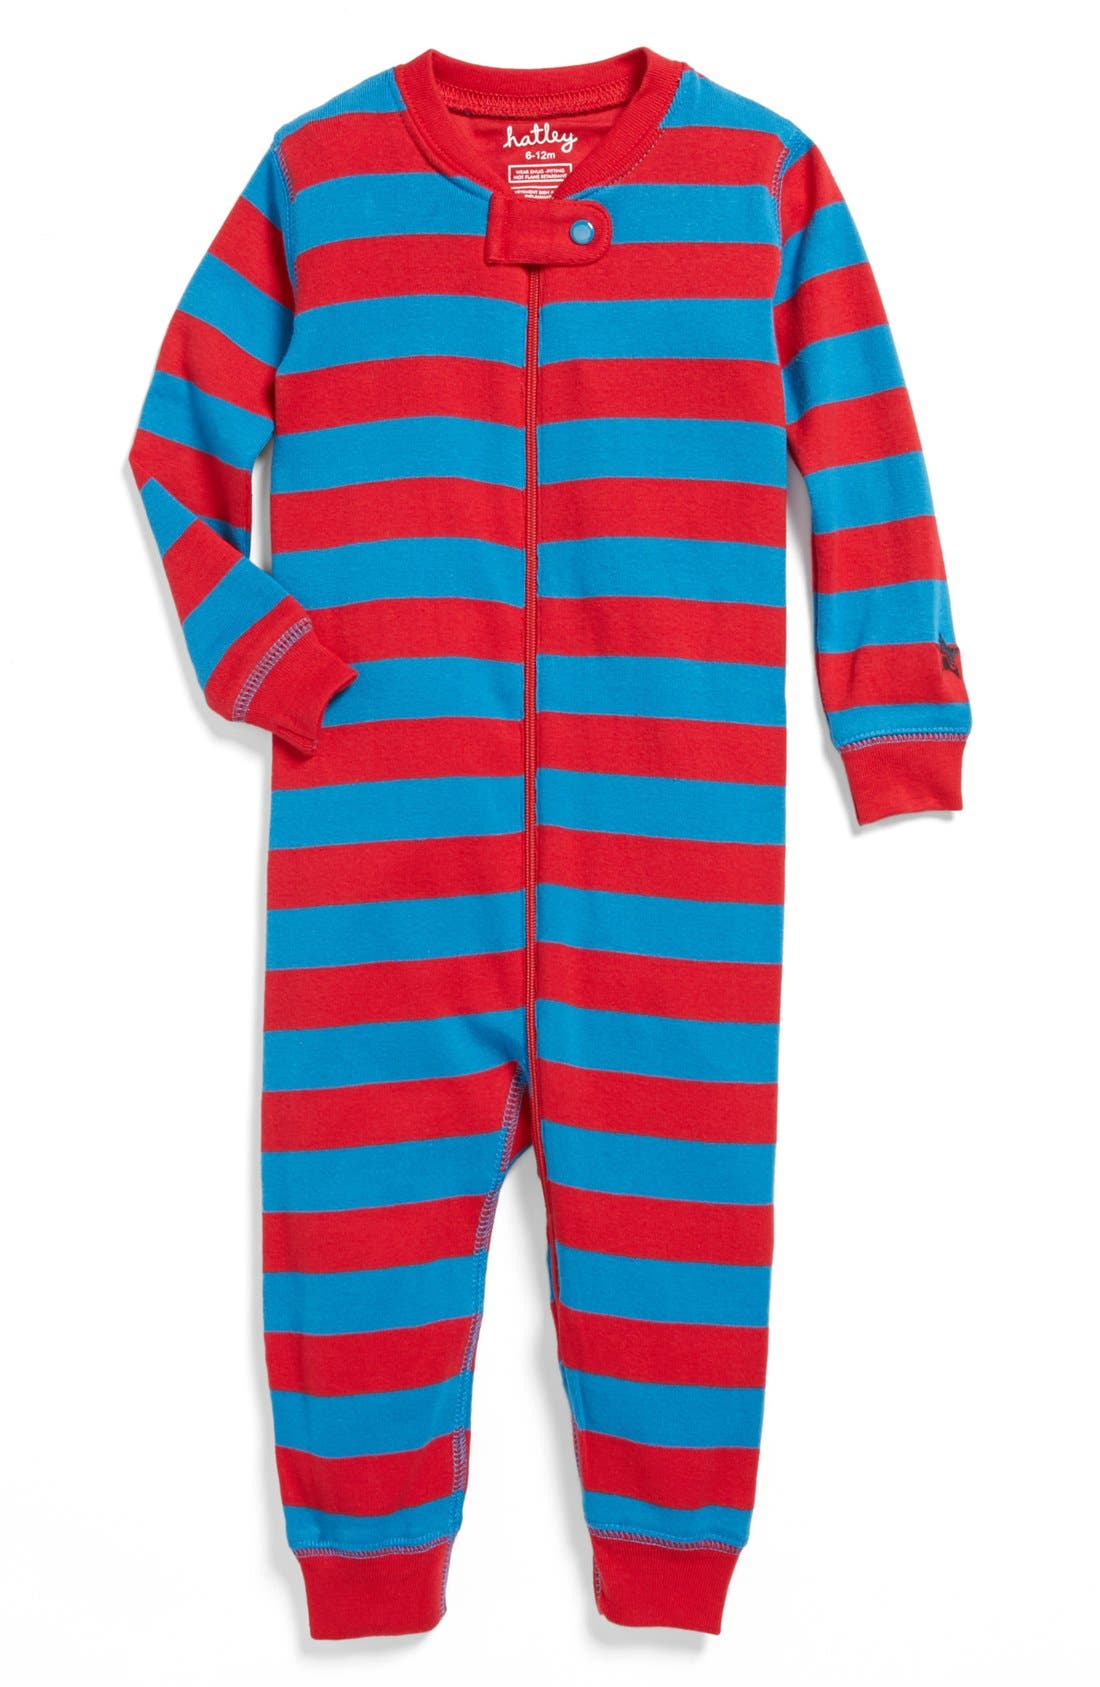 Main Image - Hatley 'Electric Stripes' Romper (Baby)